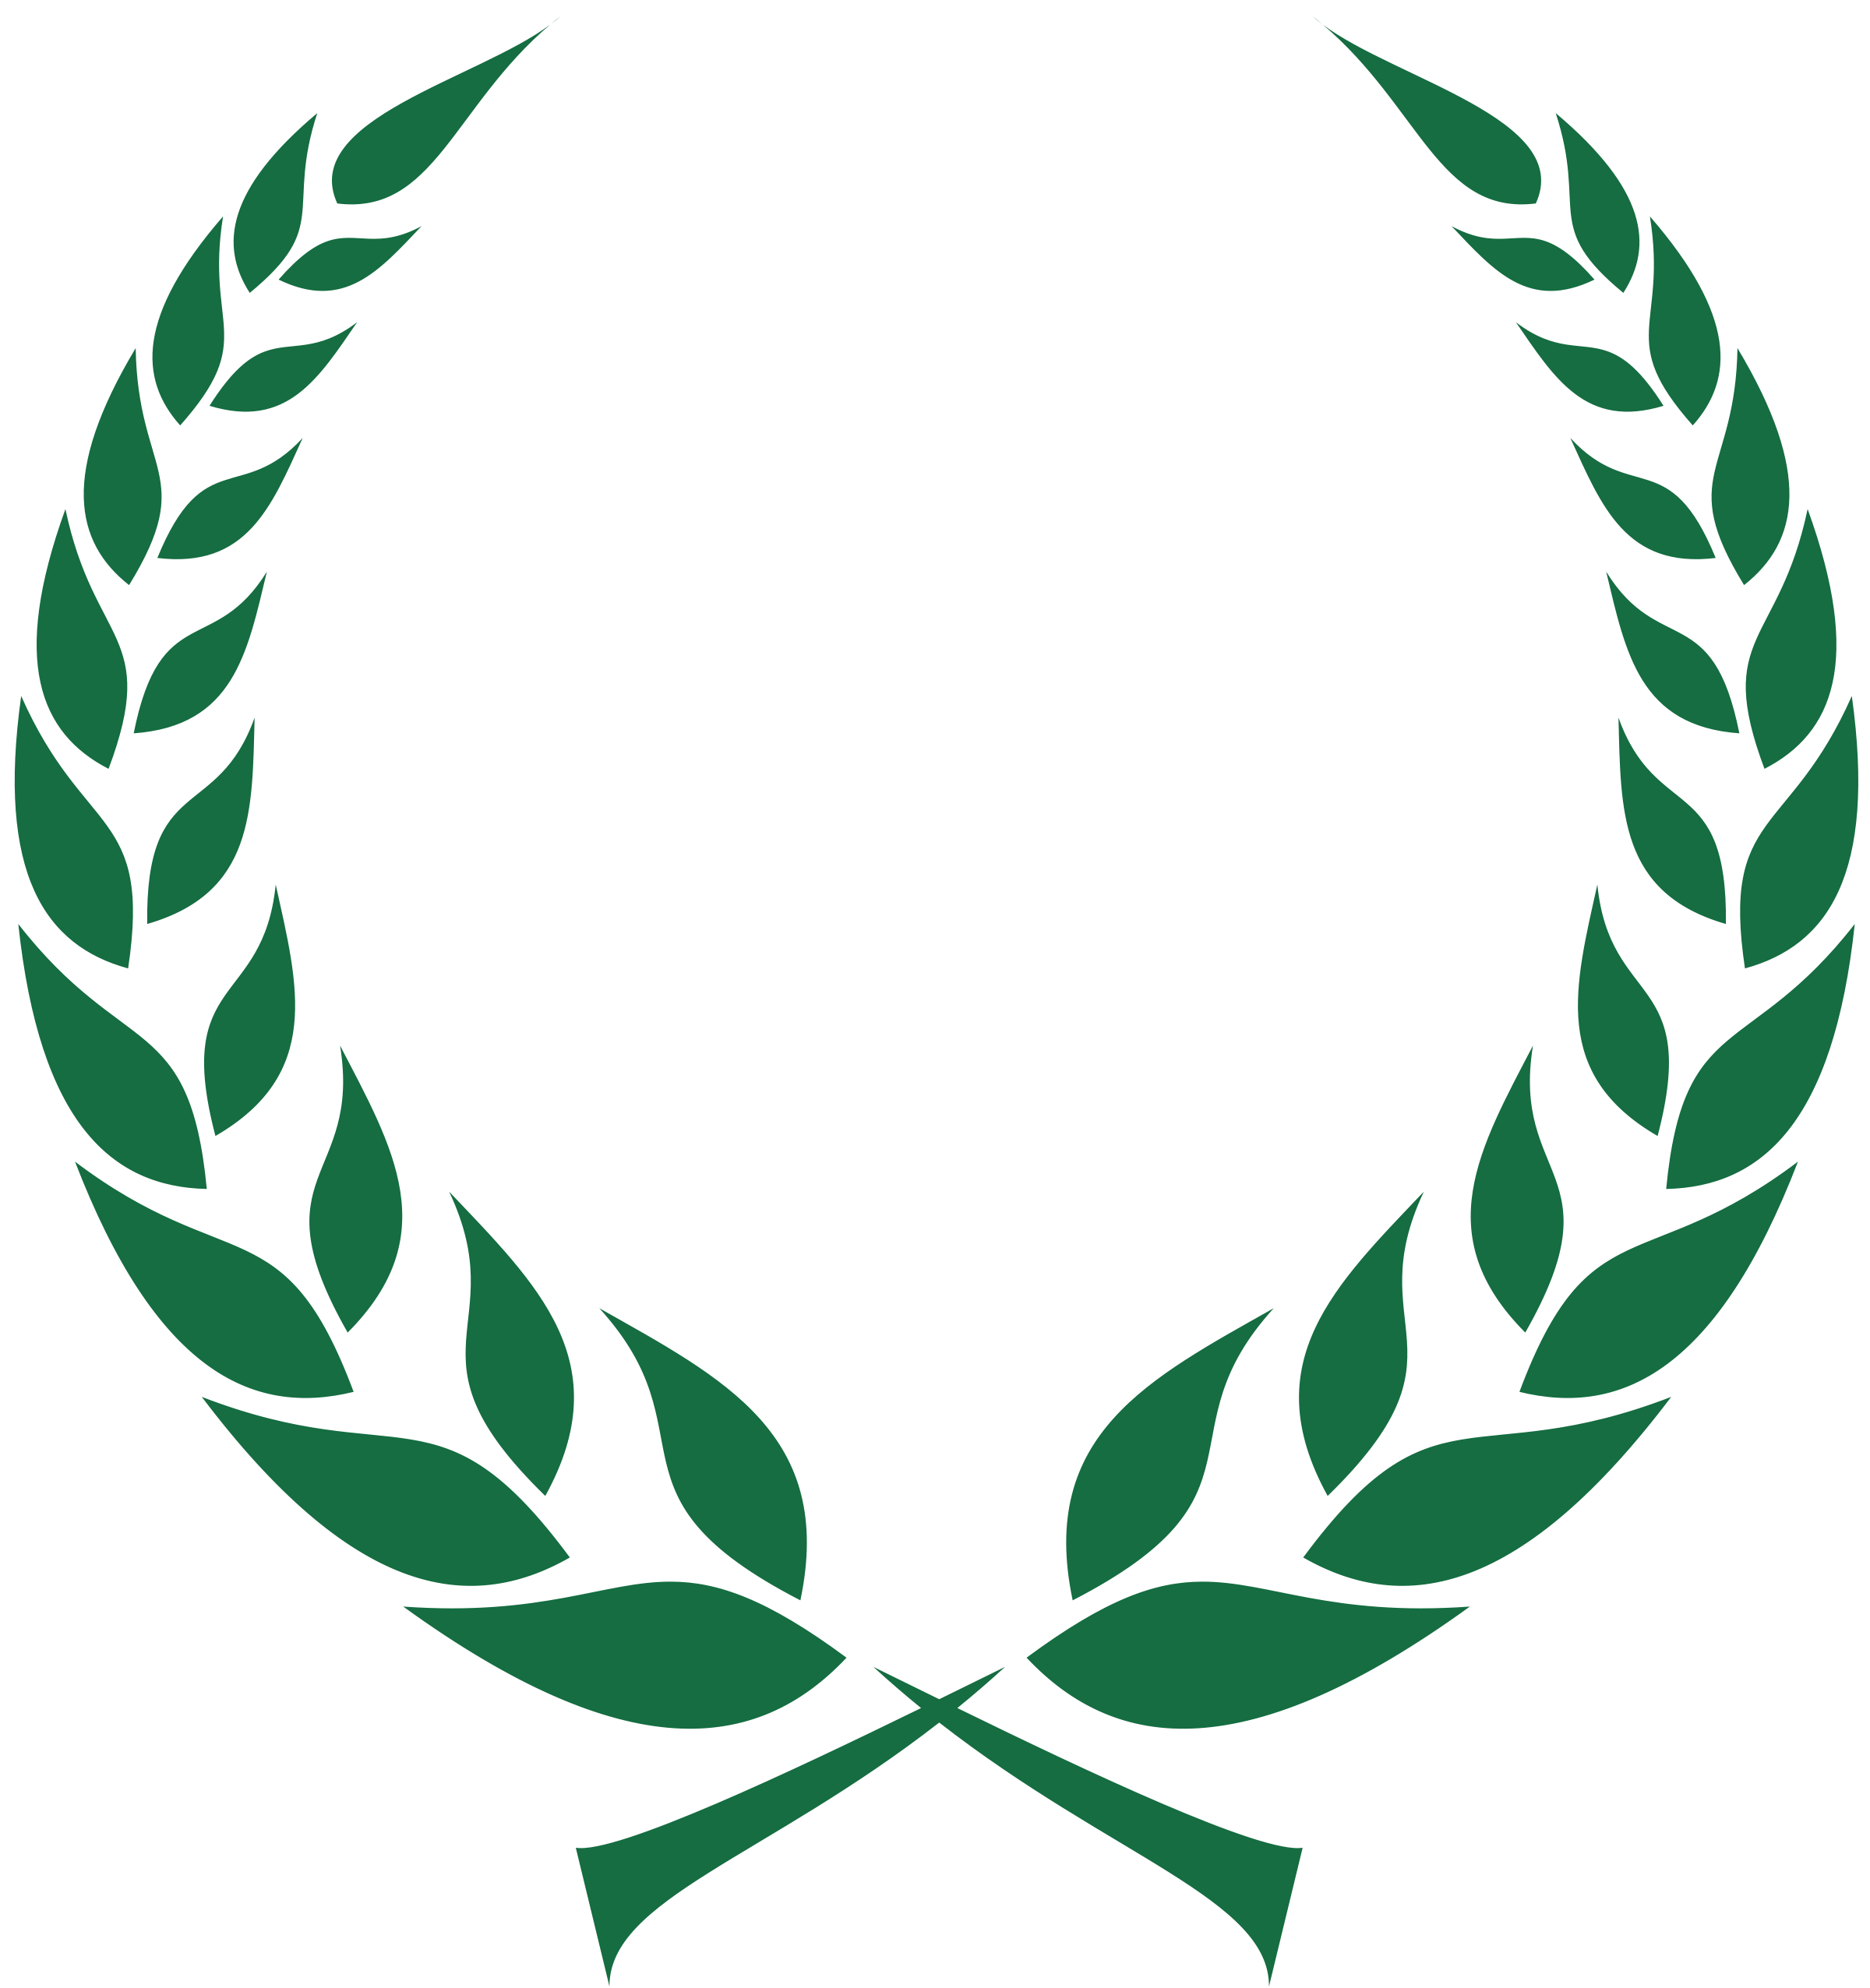 Best wreath service award. Greek clipart greek pillar